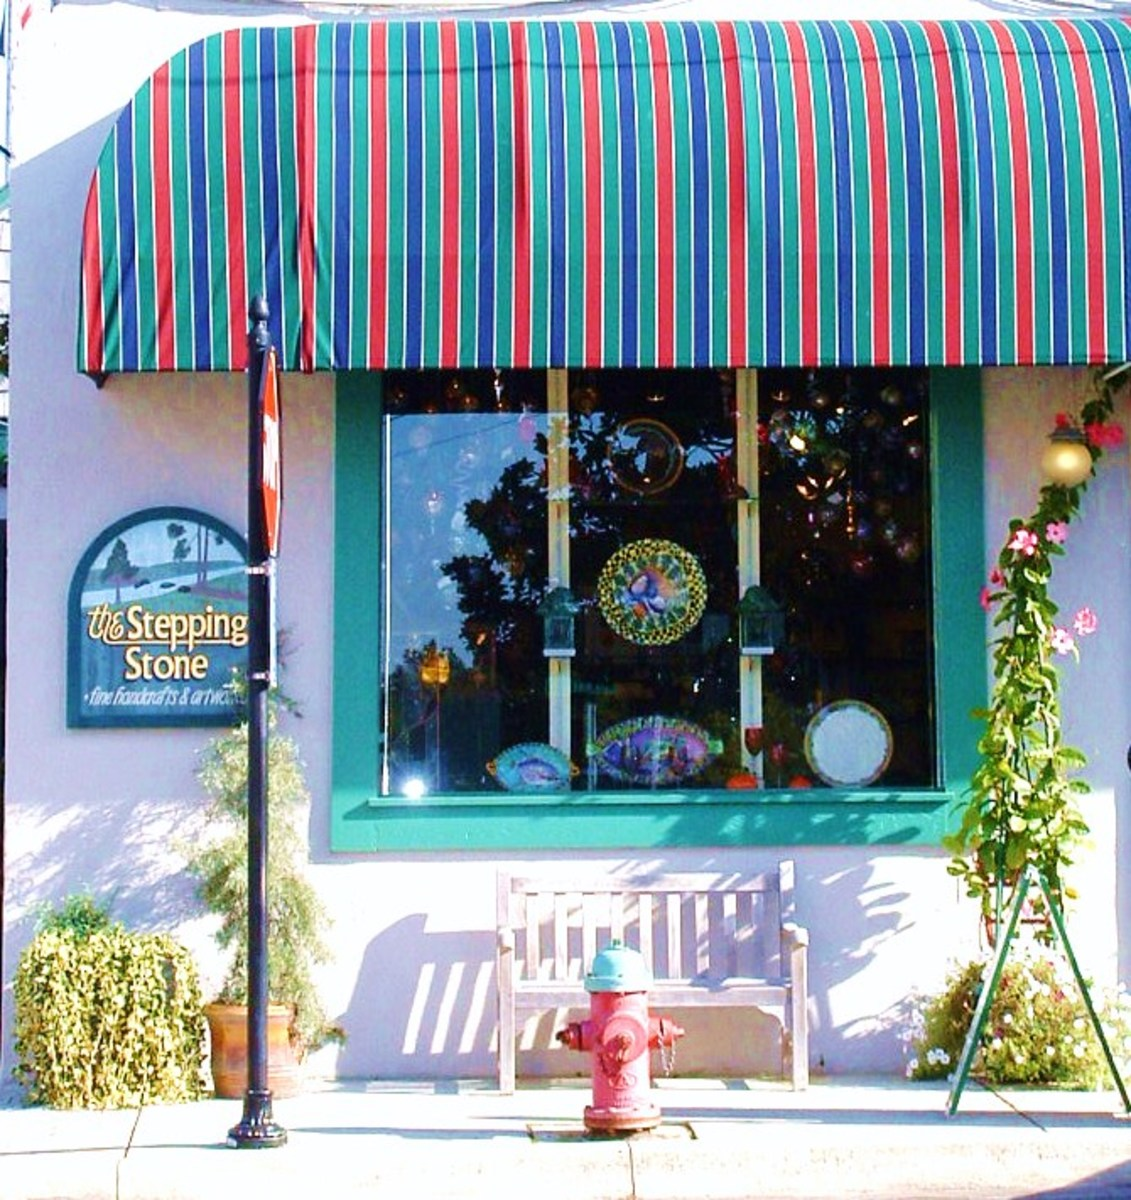 The Stepping Stone sells unique American-made fine handcrafts: pottery, glass, metal, wood & jewelry.